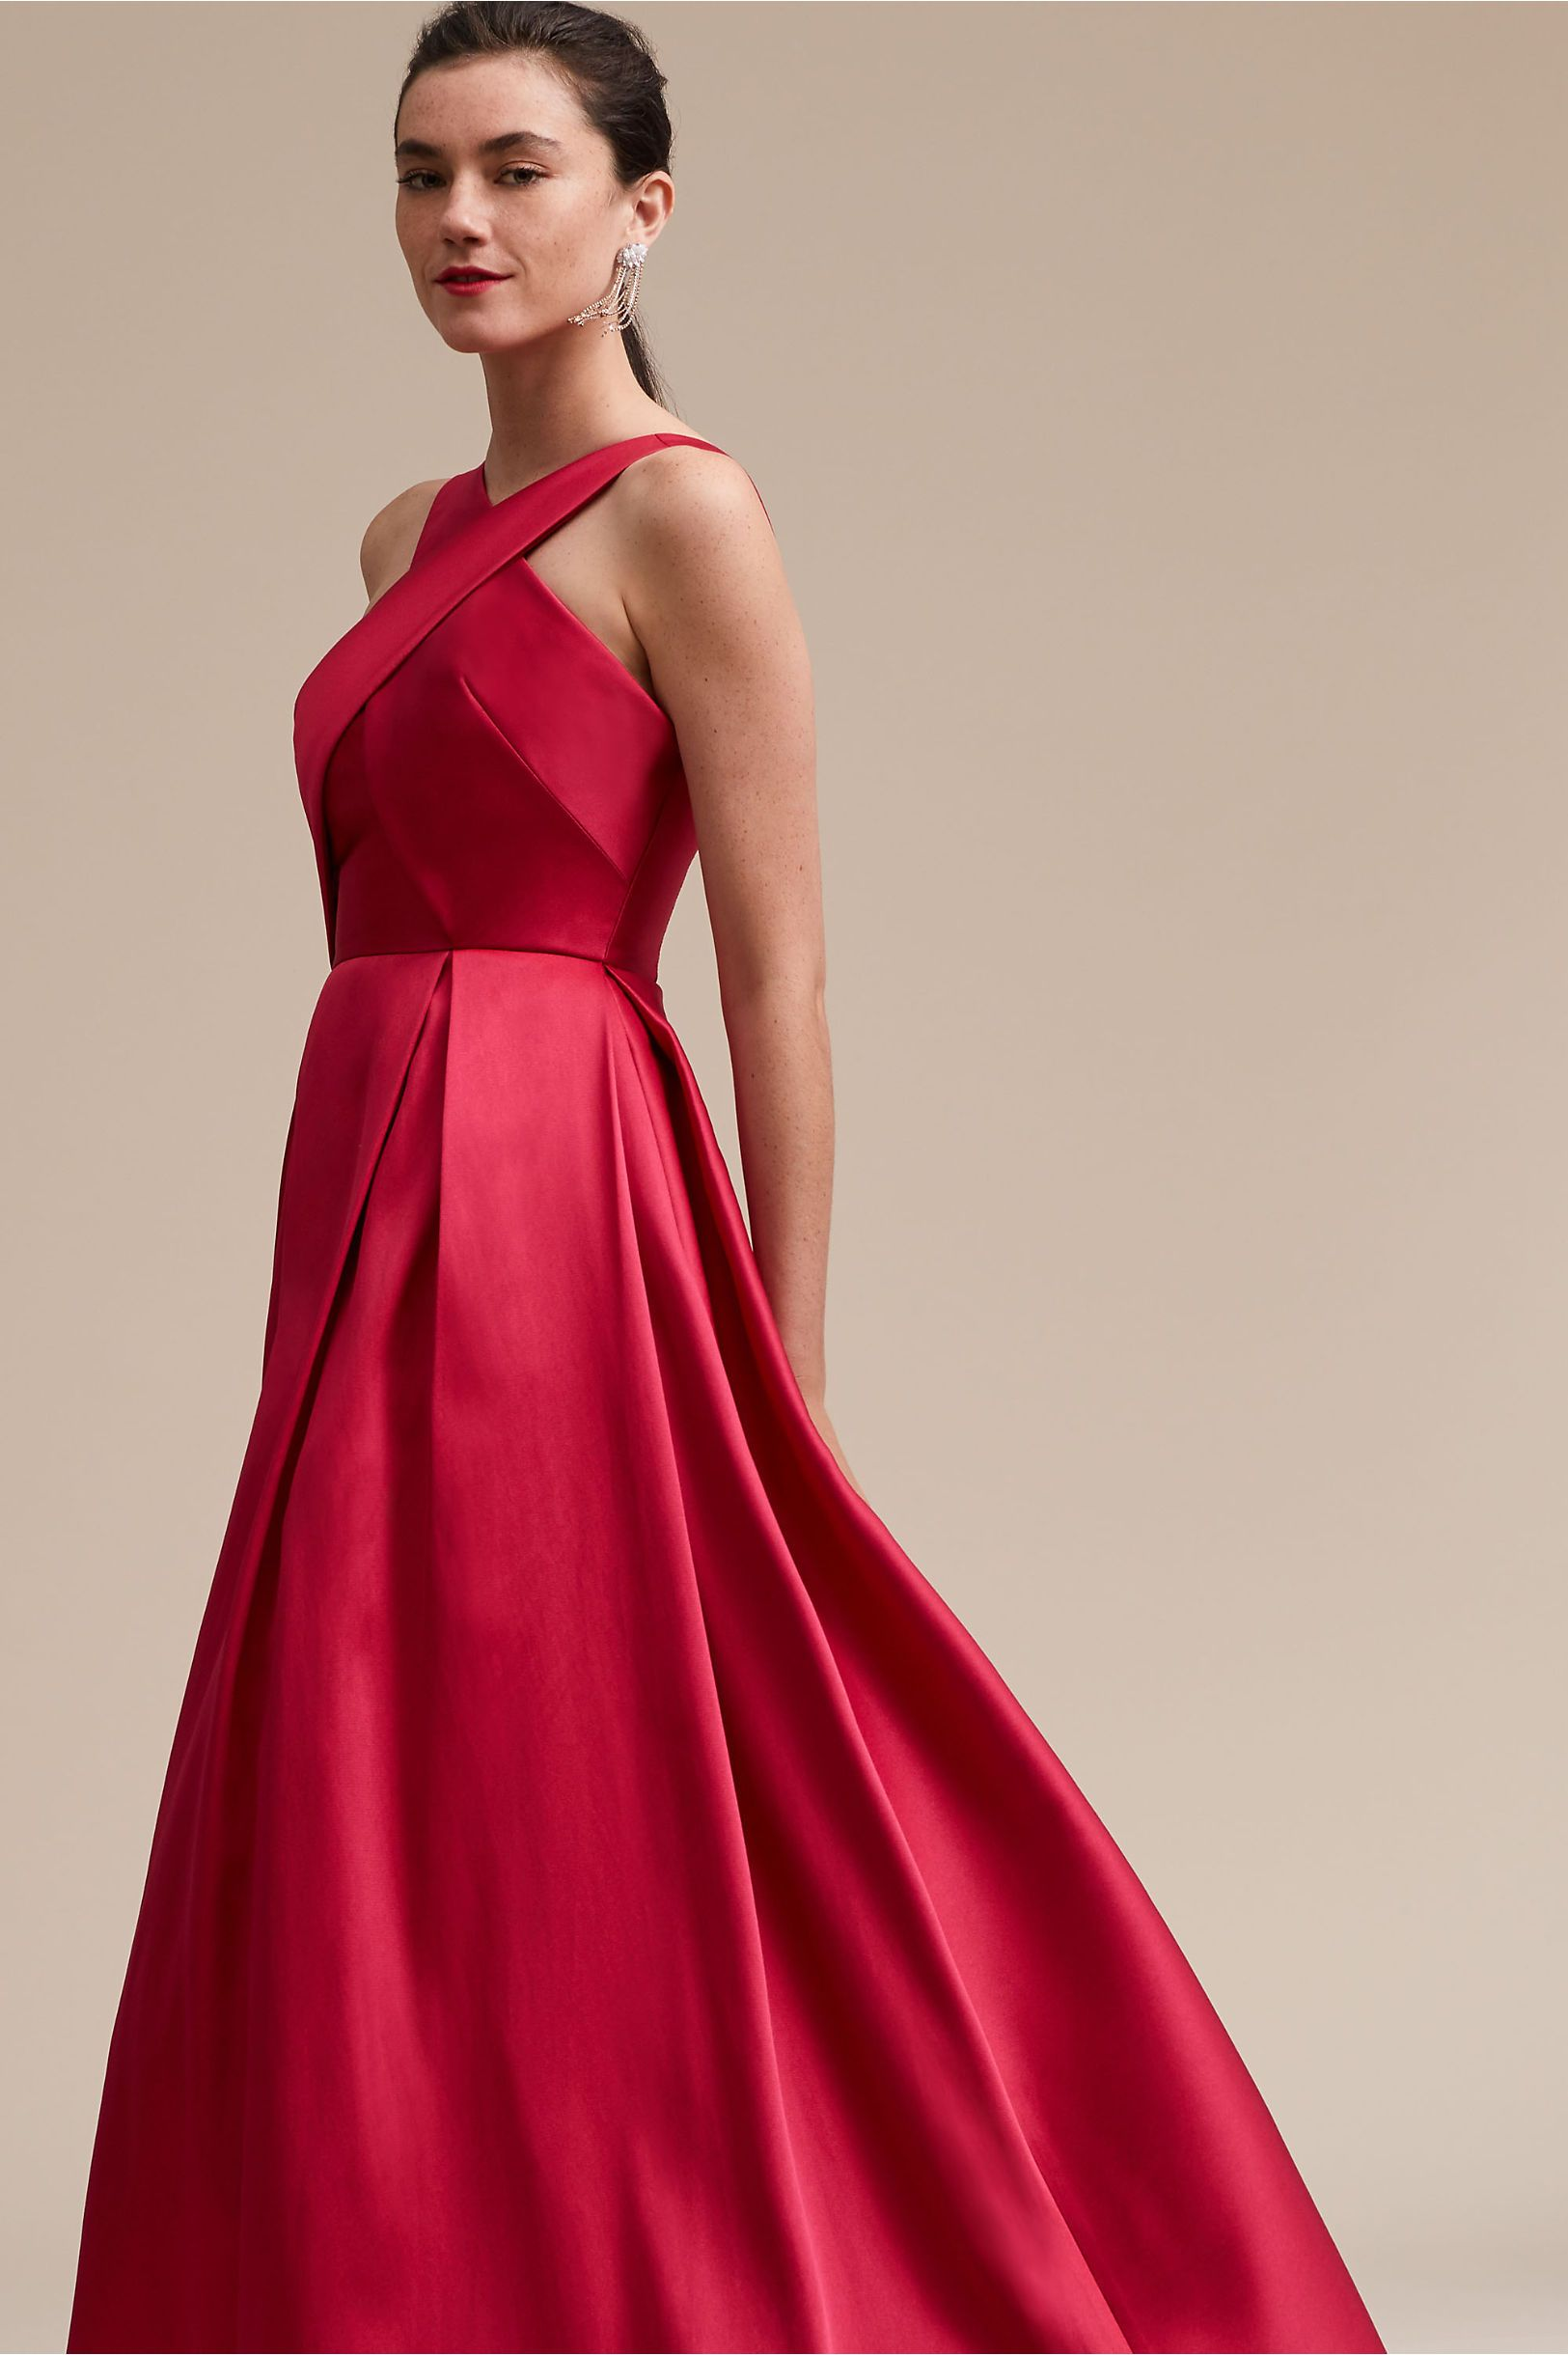 4512bc681fdf BHLDN s Ml Monique Lhuillier Henderson Dress in Cerise